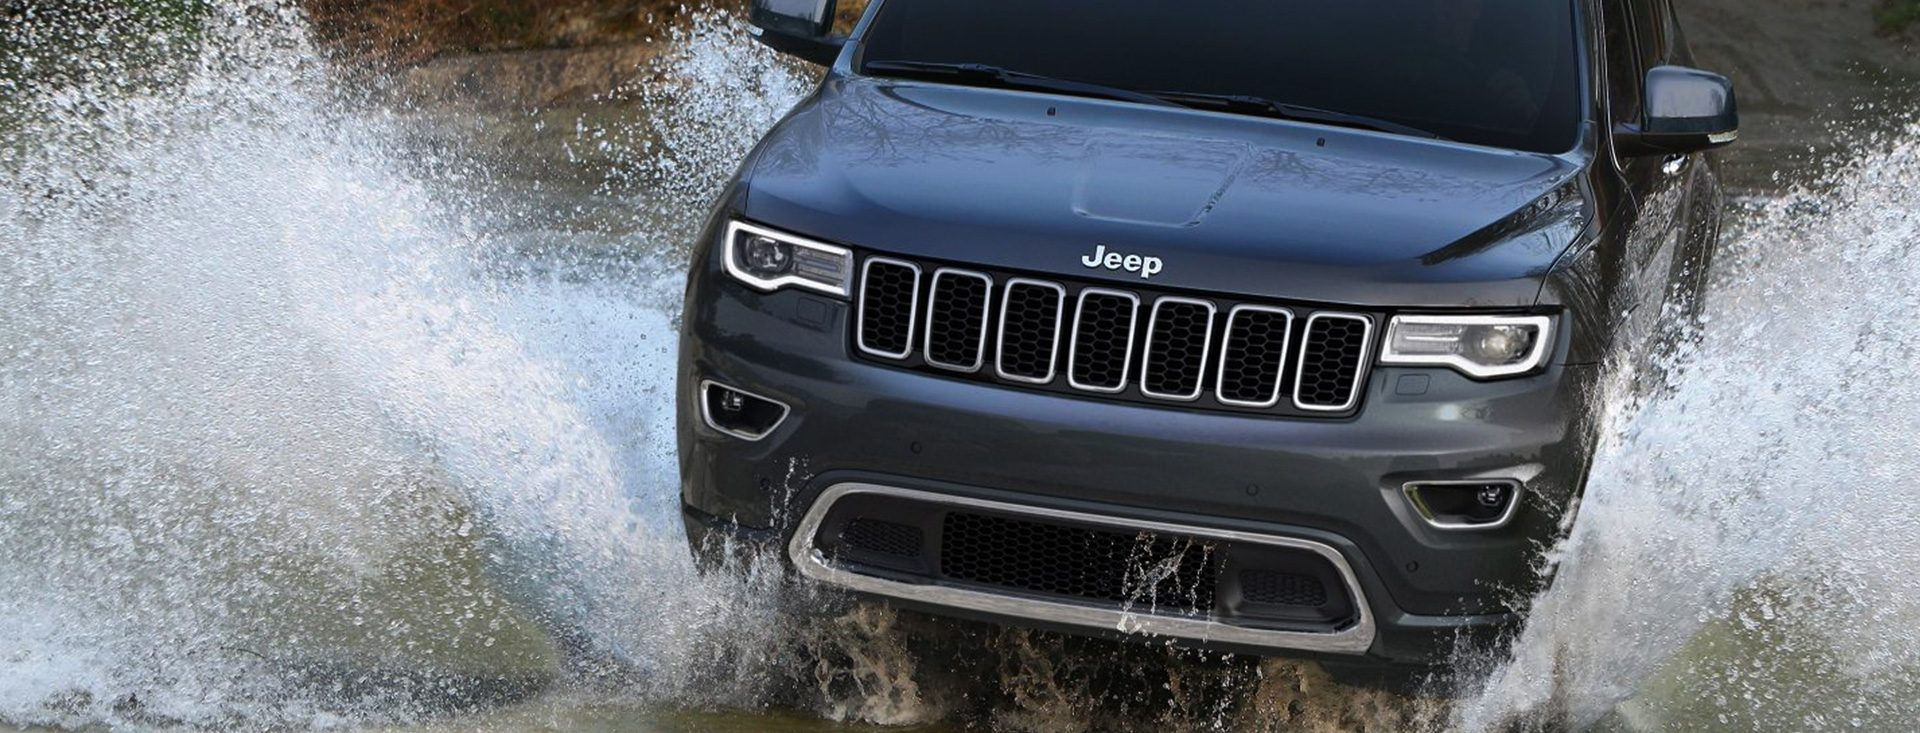 jeep-grand-cherokee-capability-spotlight